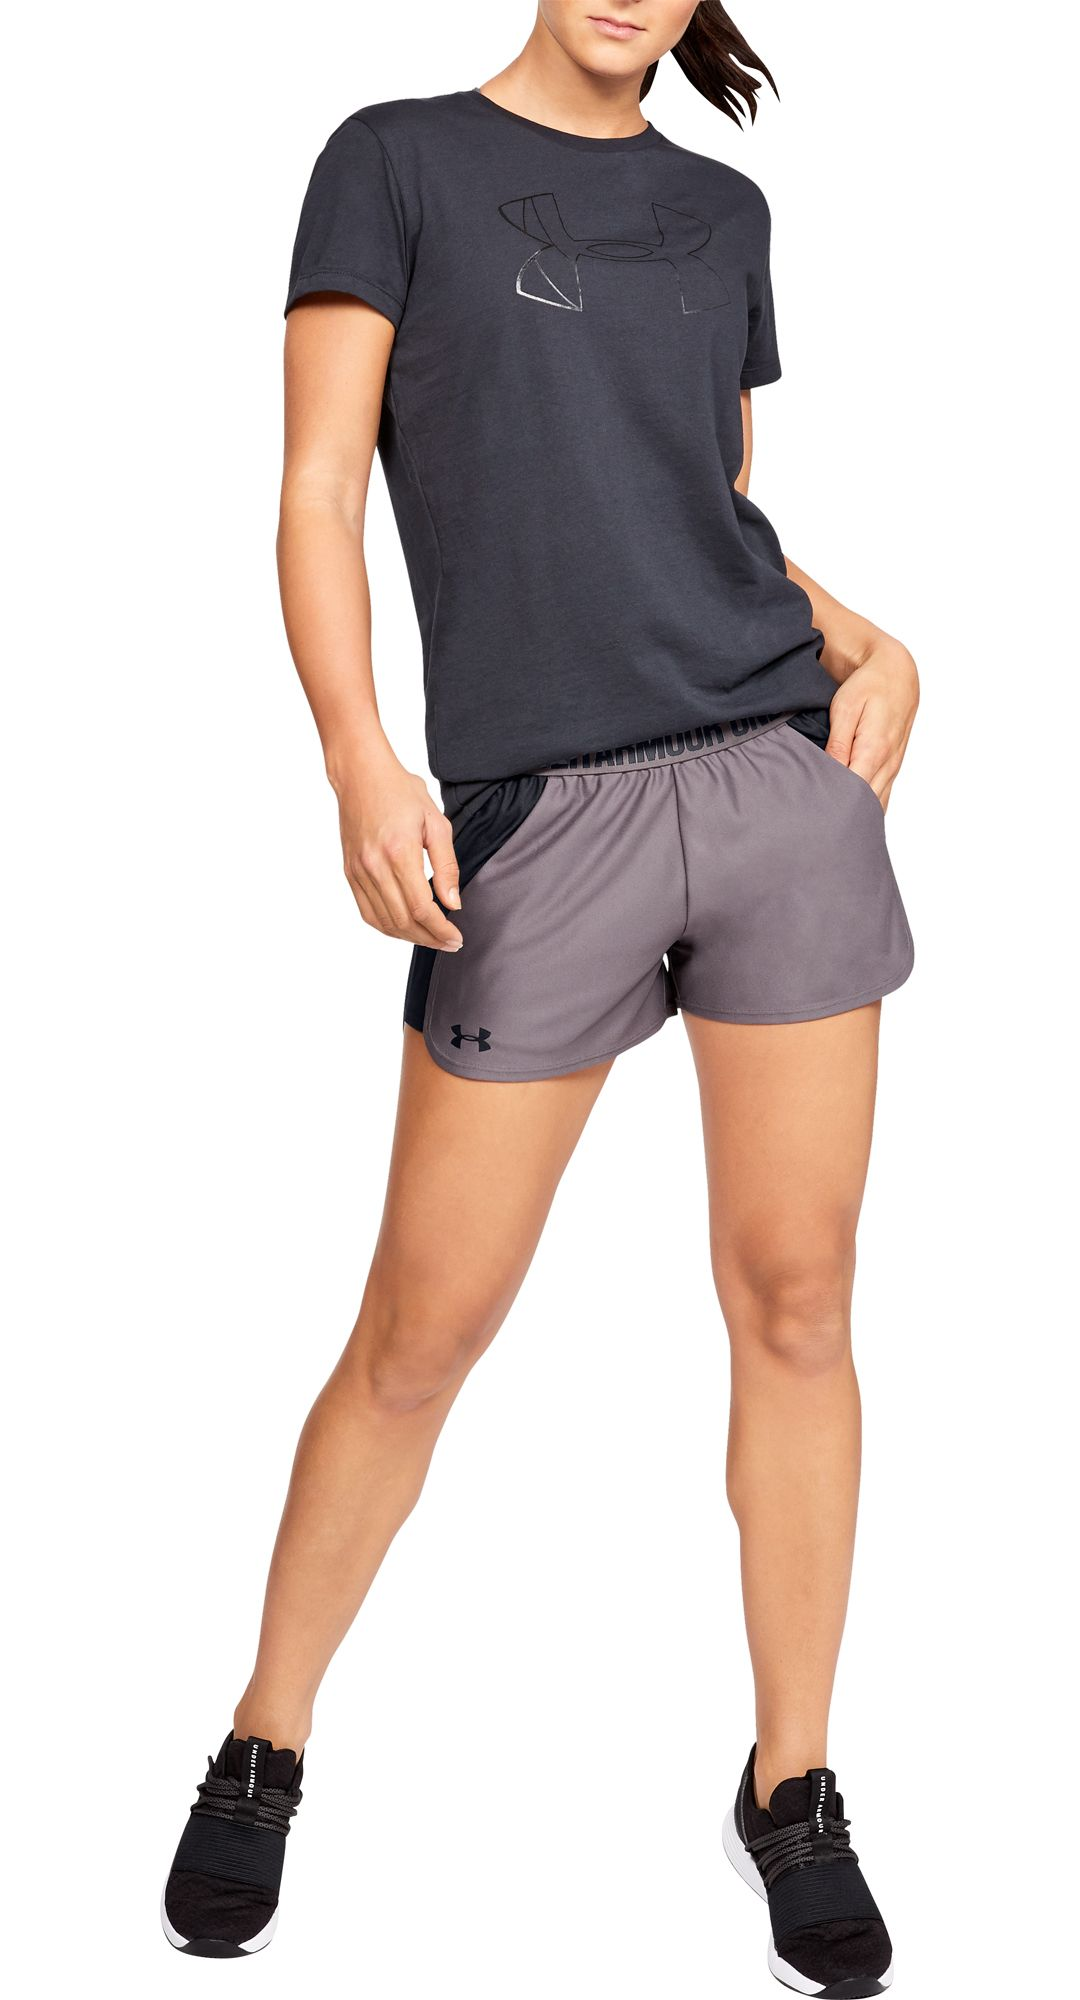 32c64b24a6 Under Armour Women's 3'' Play Up Shorts 2.0